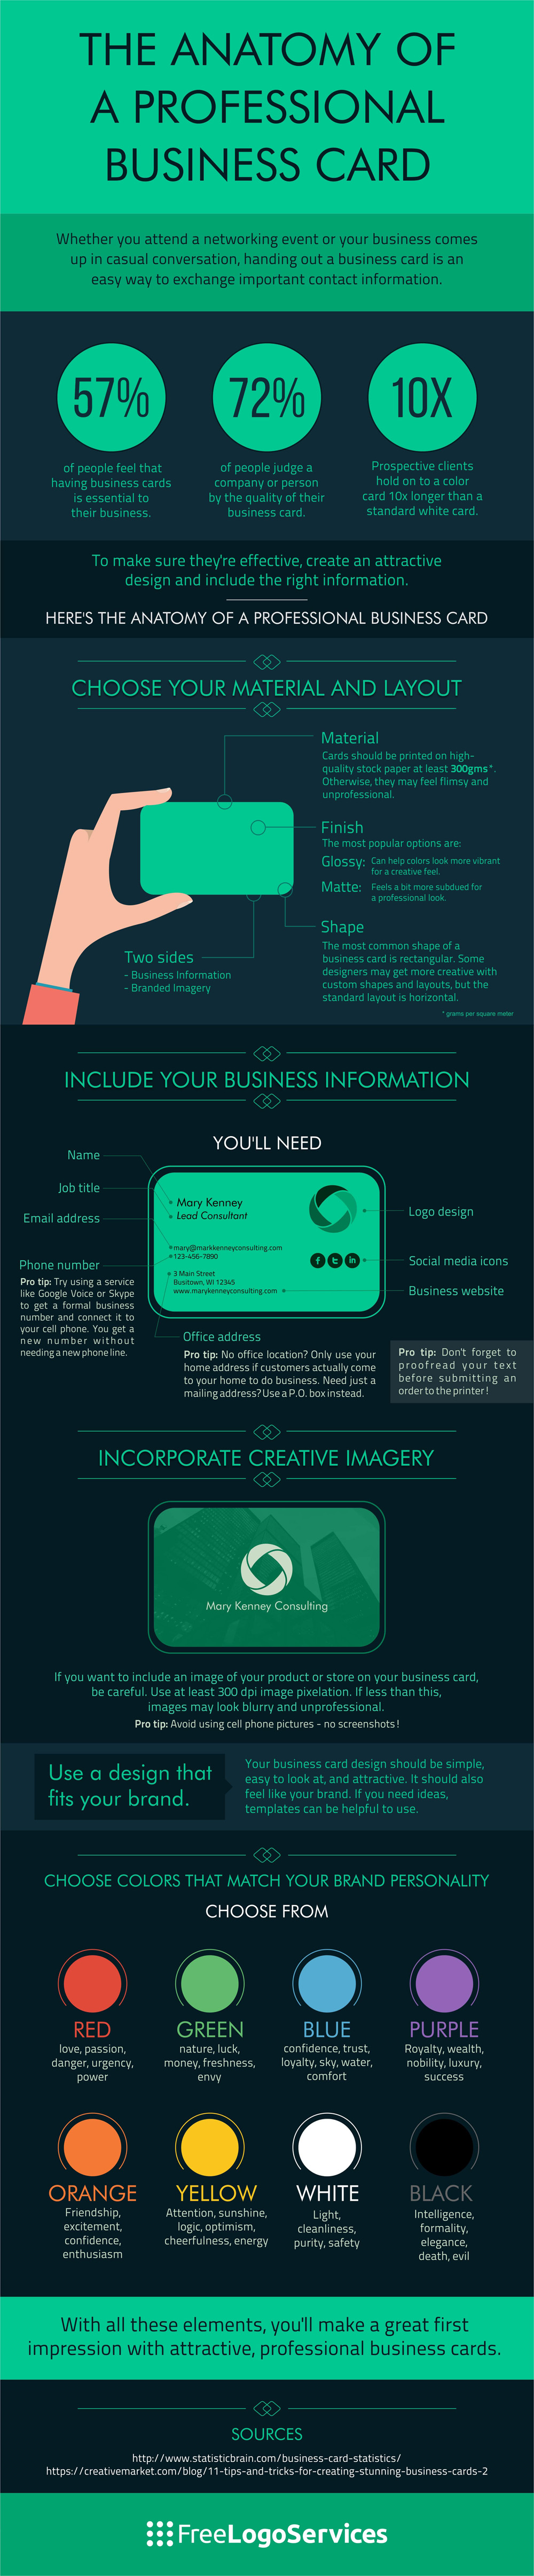 Business card mx kod images card design and card template business card mx kod gallery card design and card template business card mx za darmo image reheart Image collections